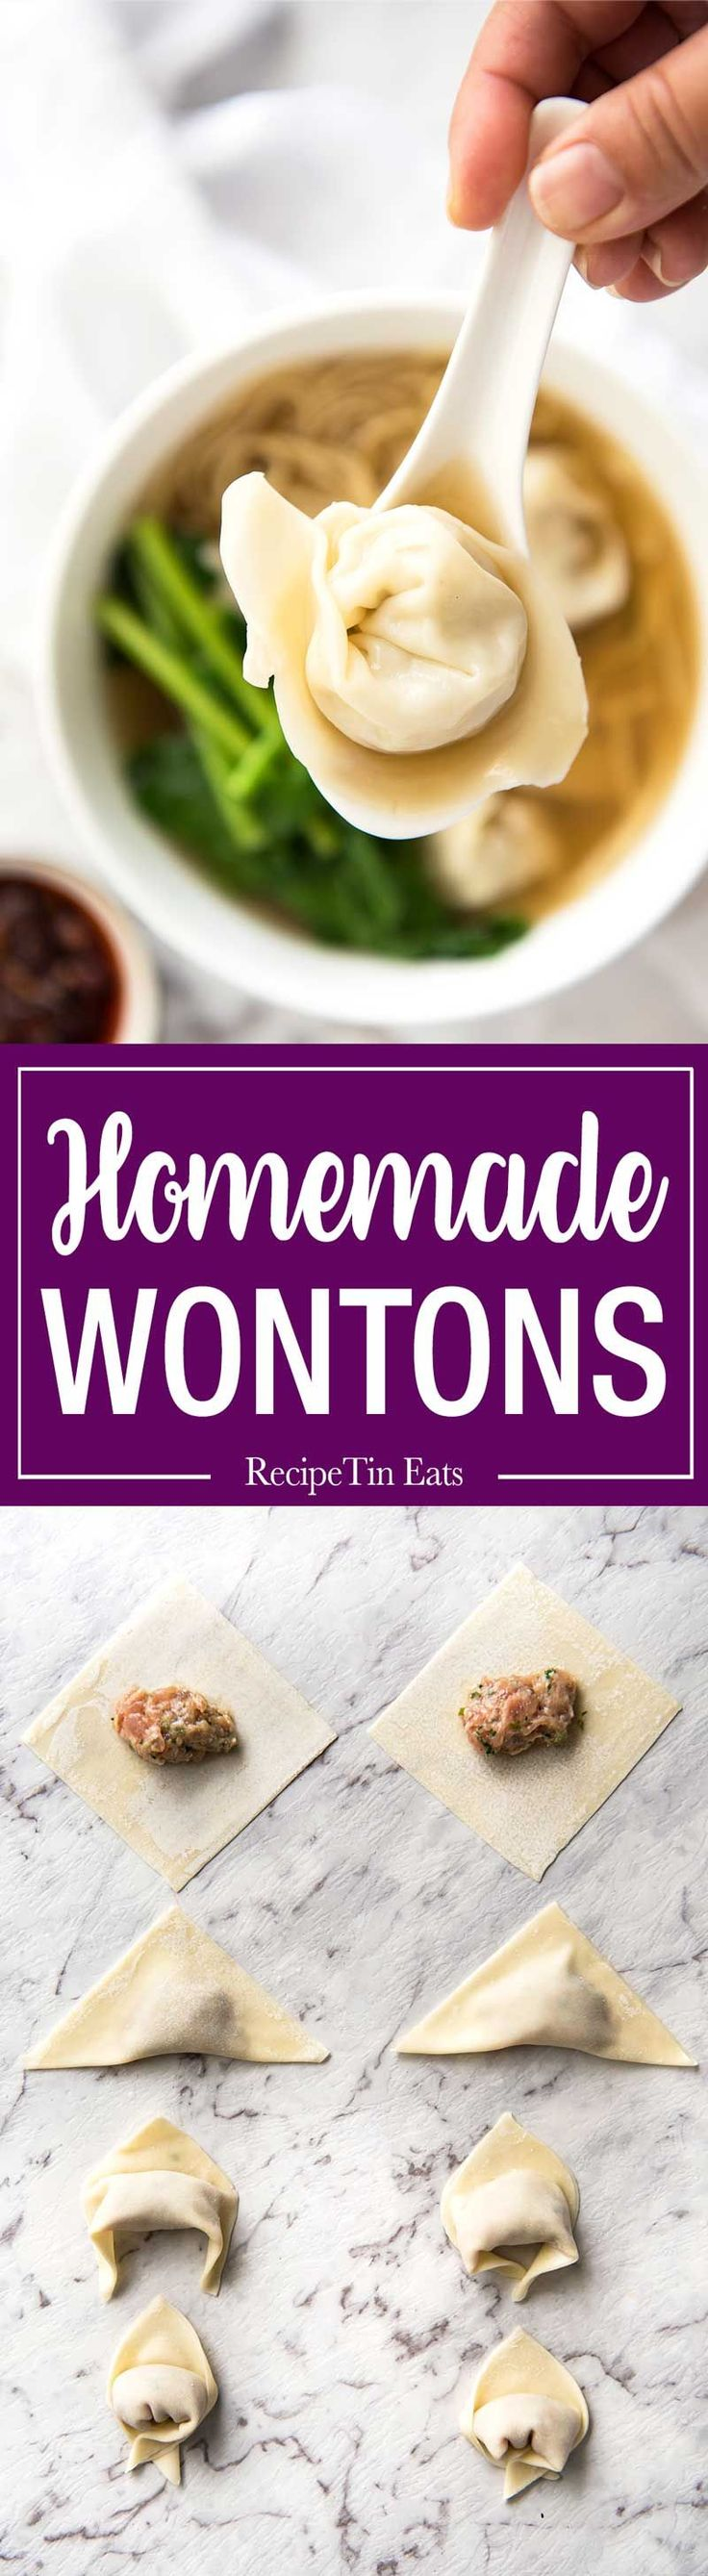 Homemade wontons filled with a juicy pork and shrimp / prawn filling! With my step by step photos and 2 little tips, these are really easy and fast to make loads of them. www.recipetineats.com